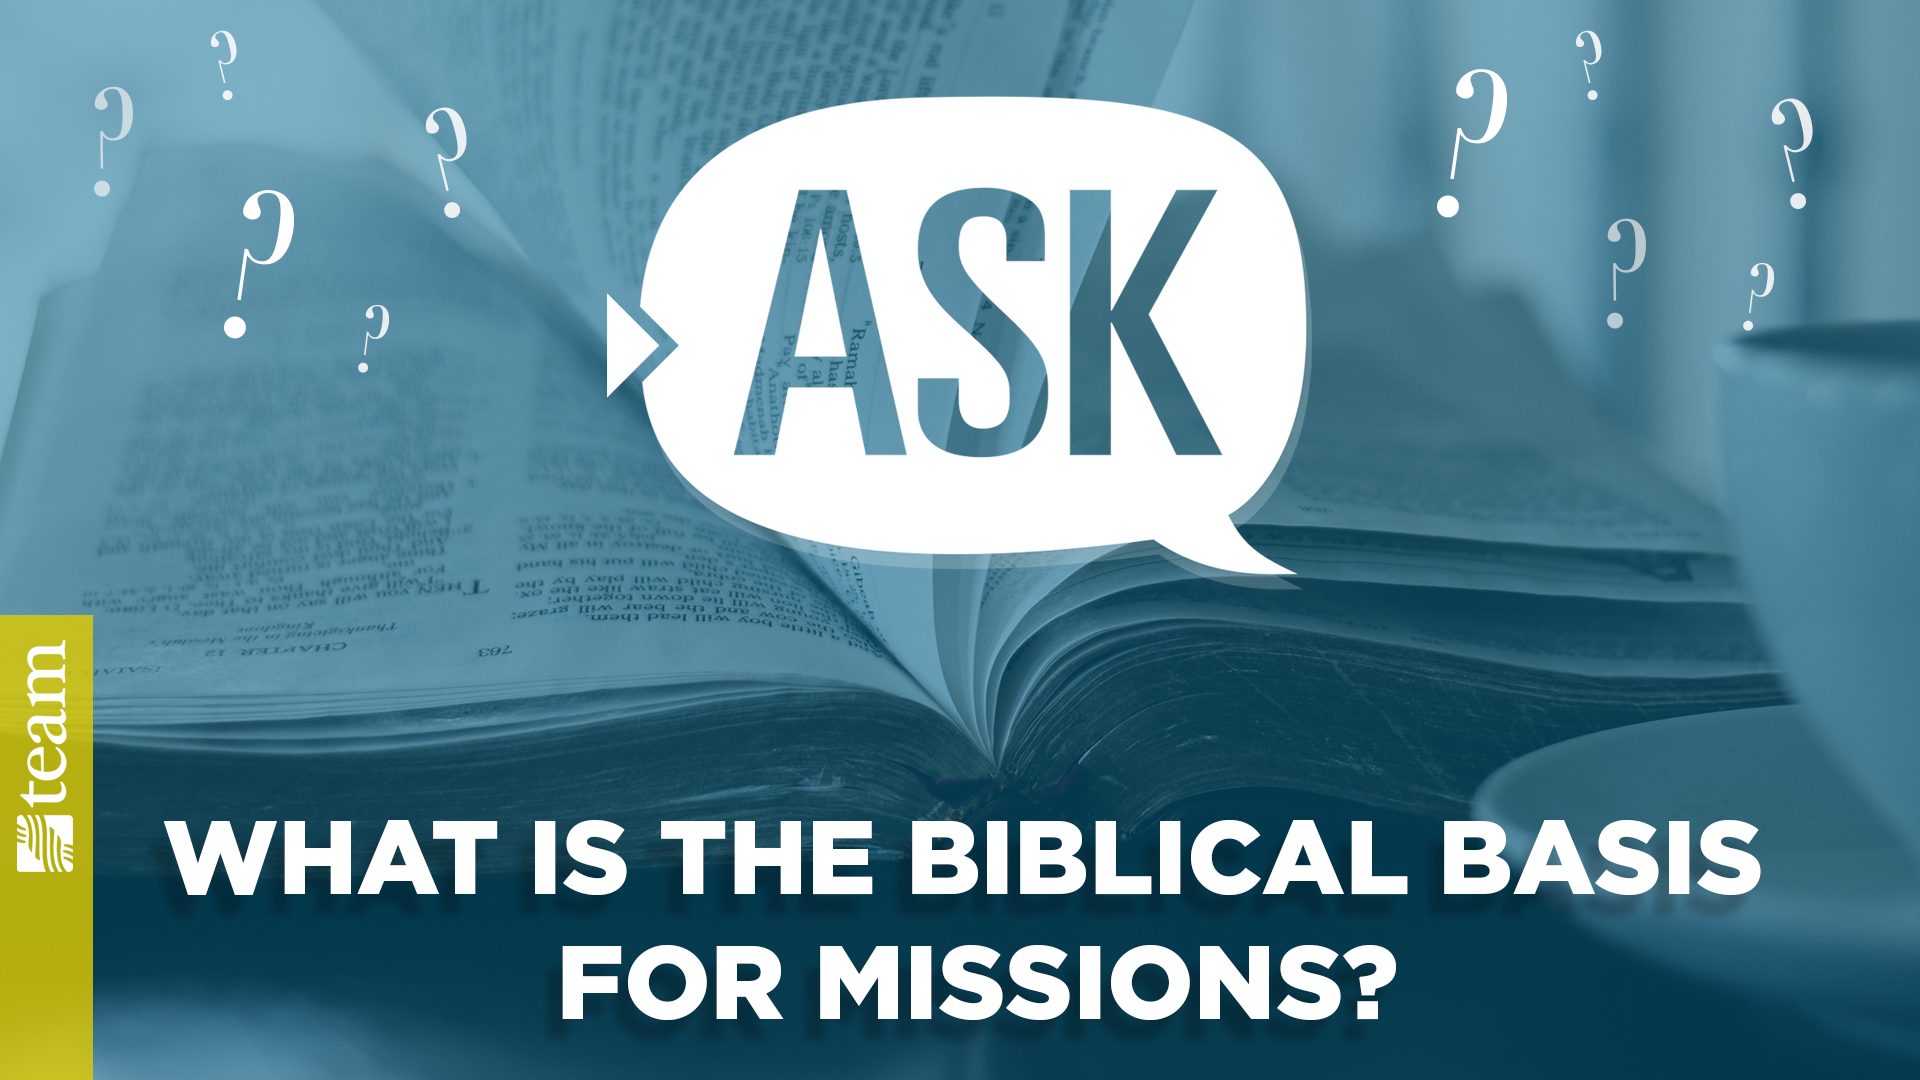 Ask: What is the biblical basis for missions?